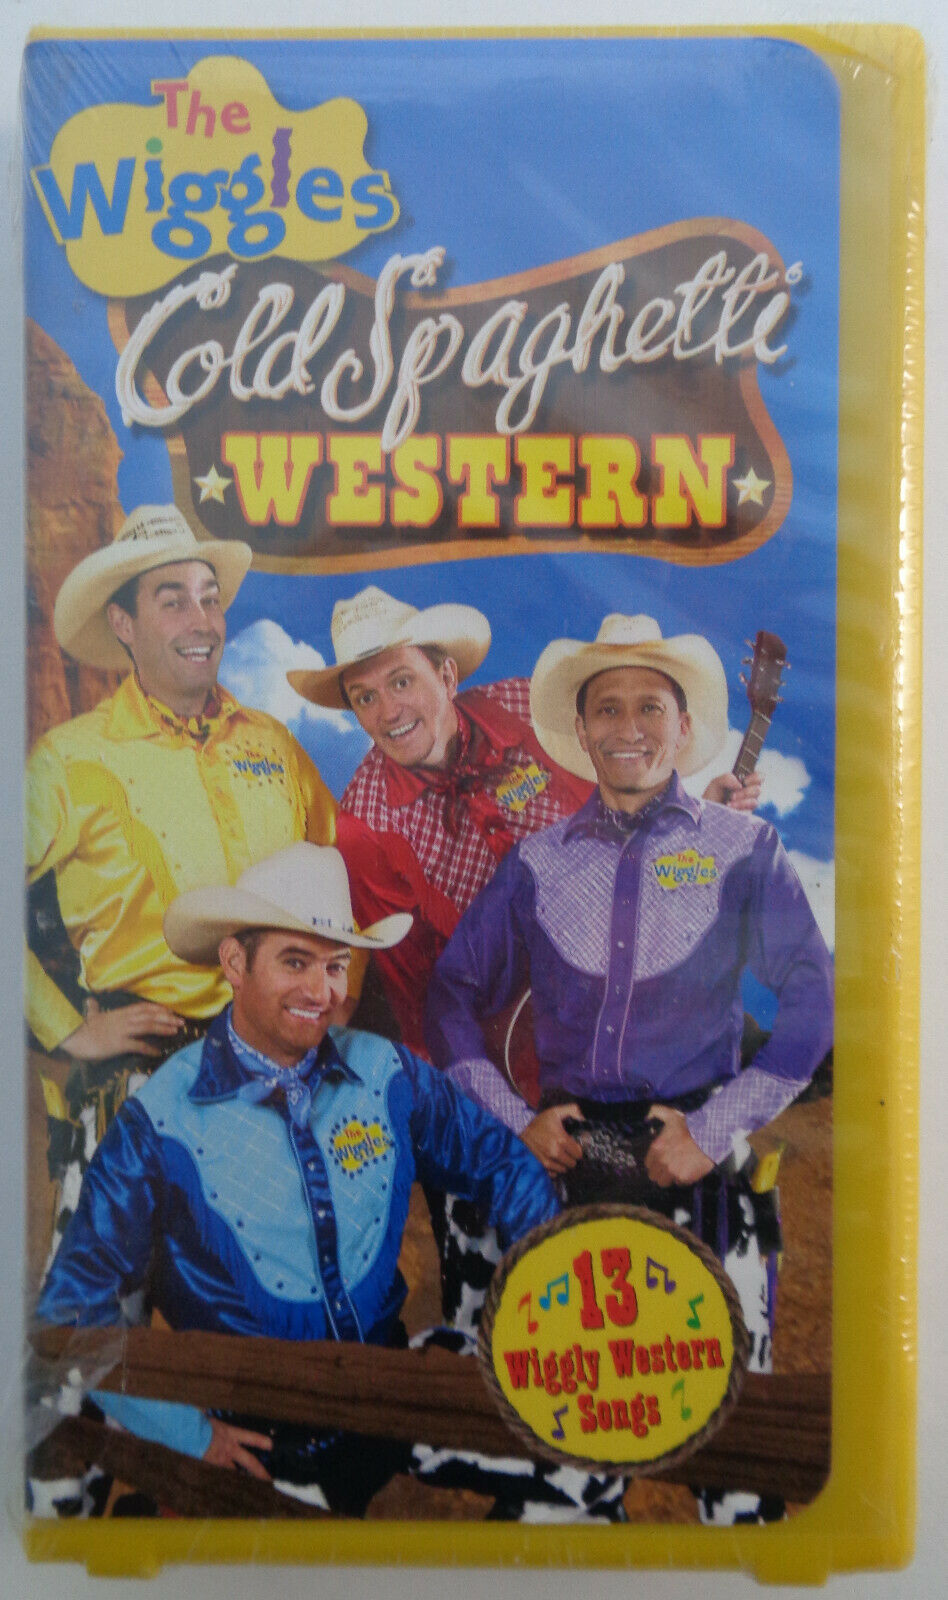 The Wiggles: Cold Spaghetti Western (2004 VHS)